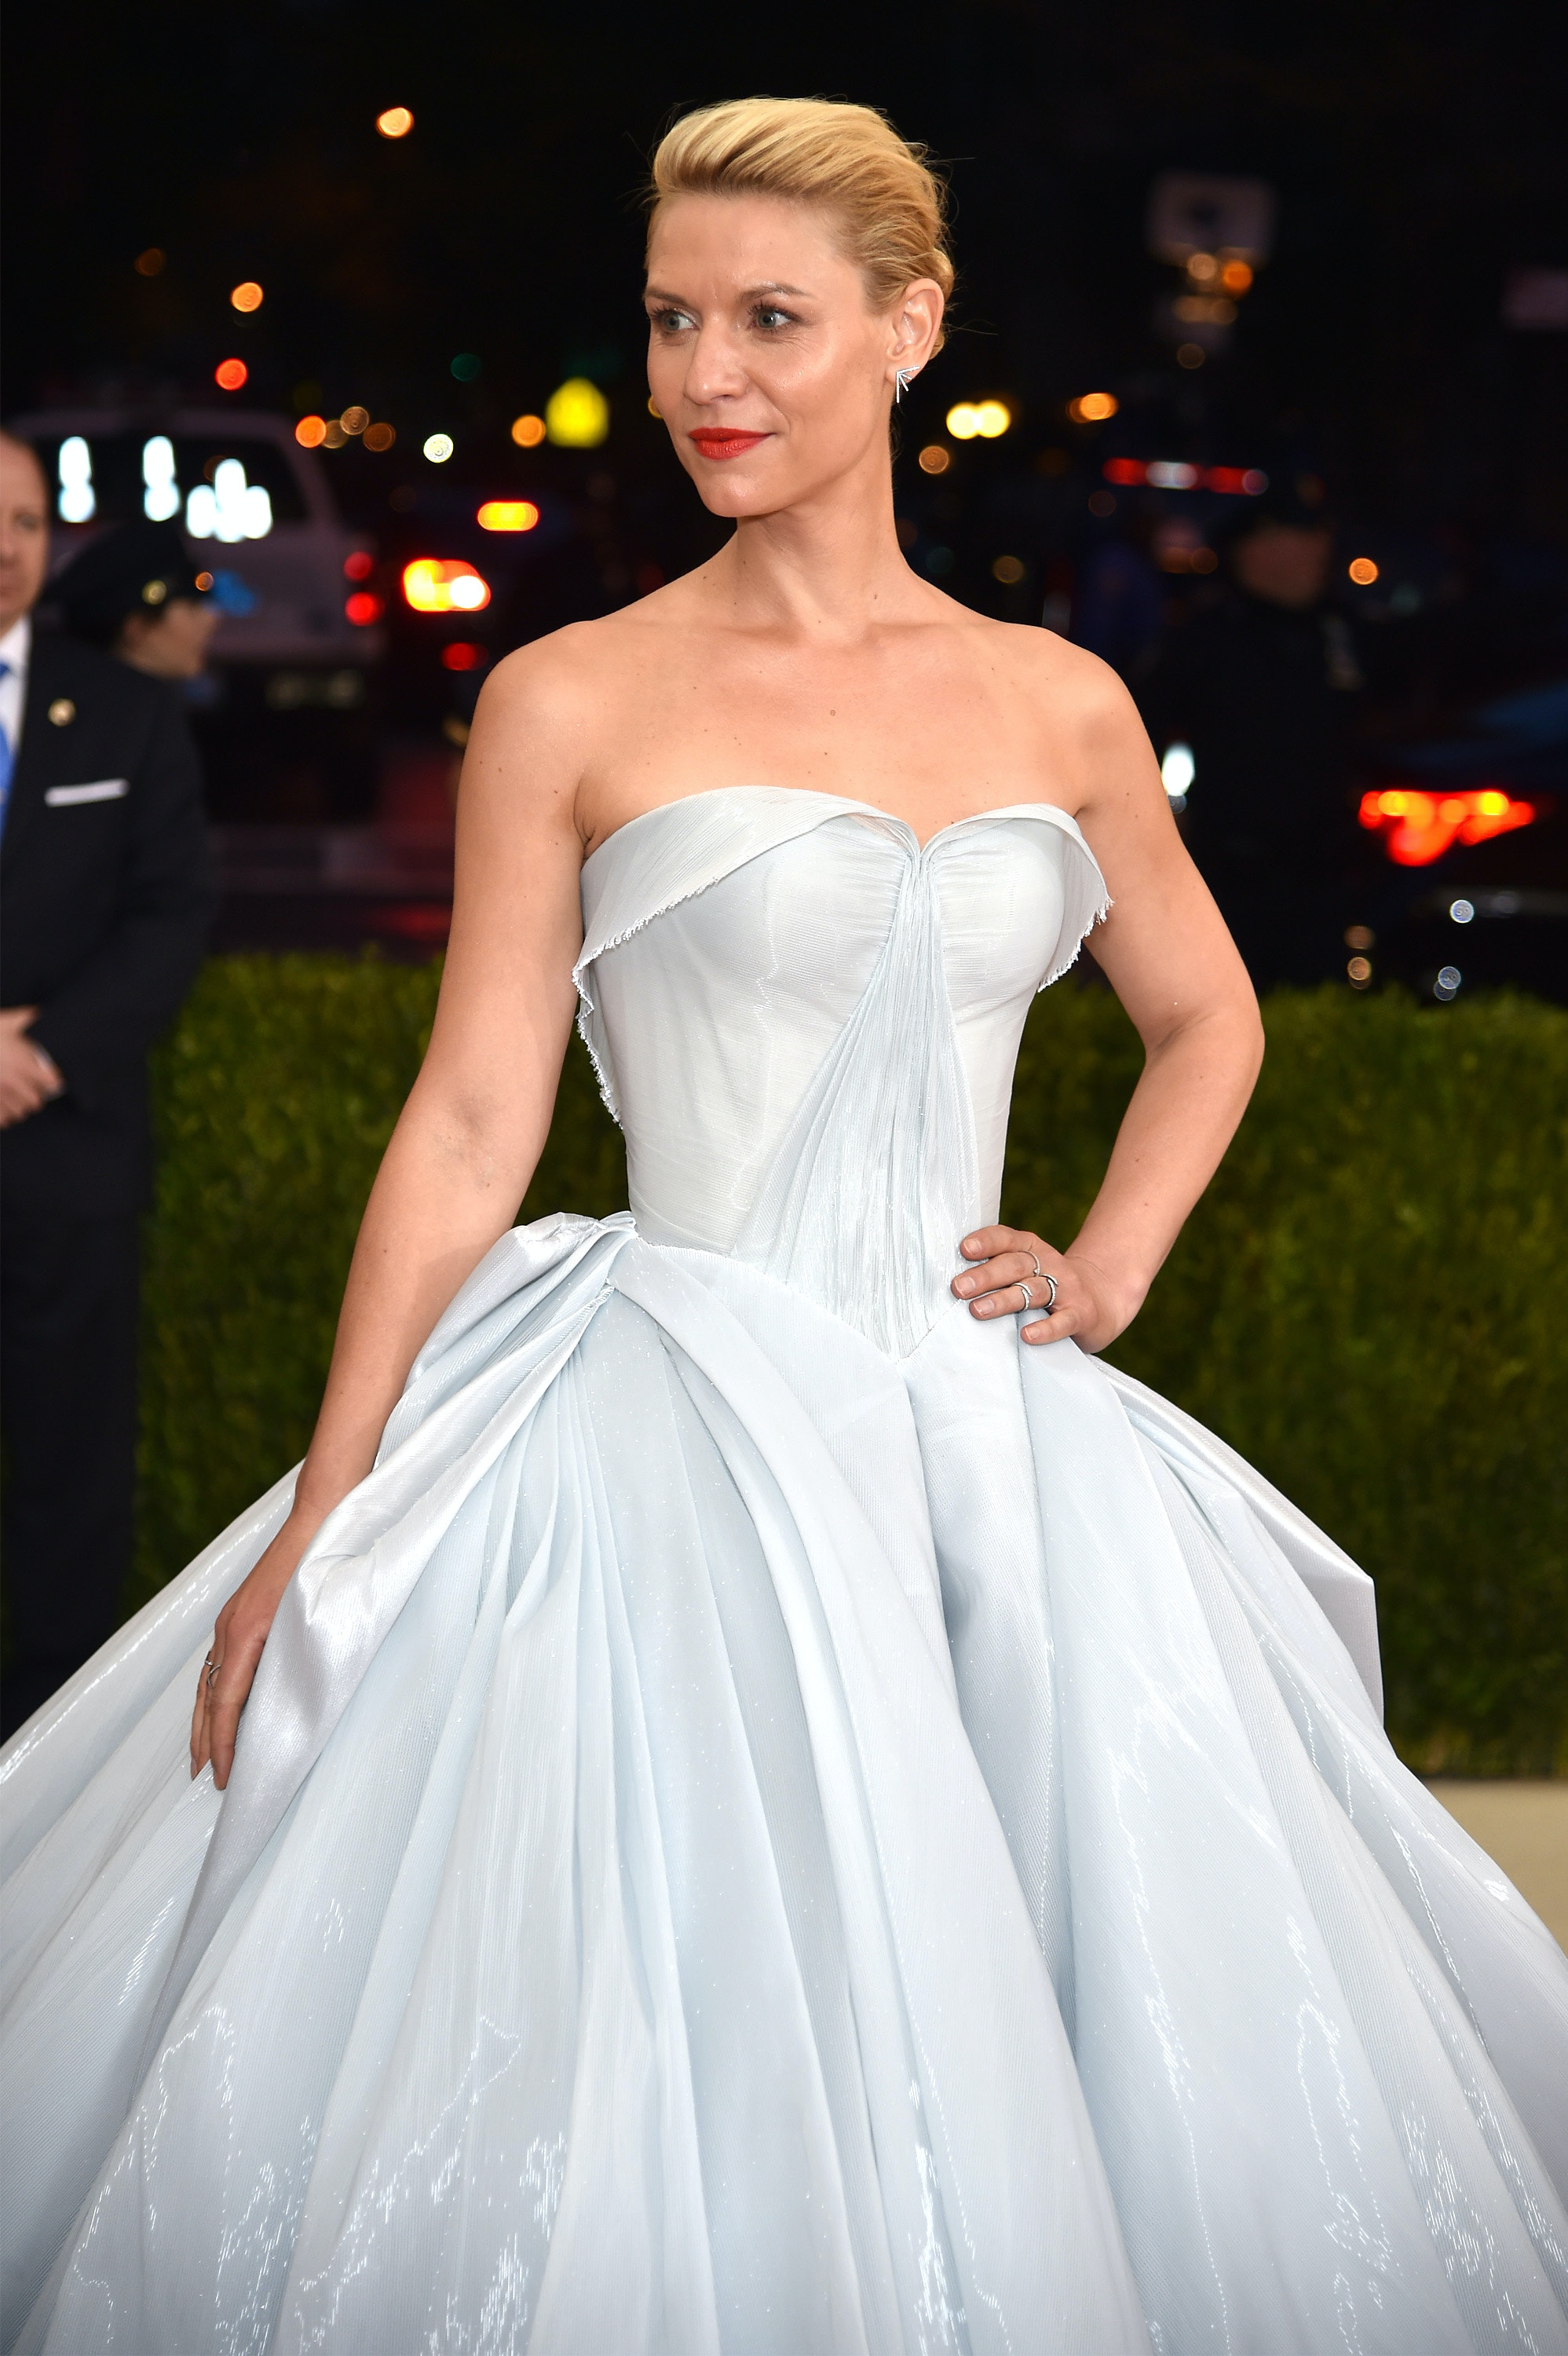 Dress up of cinderella - Who Designed Claire Danes 2016 Met Gala Dress Her Friend Made This Cinderella Gown Photos